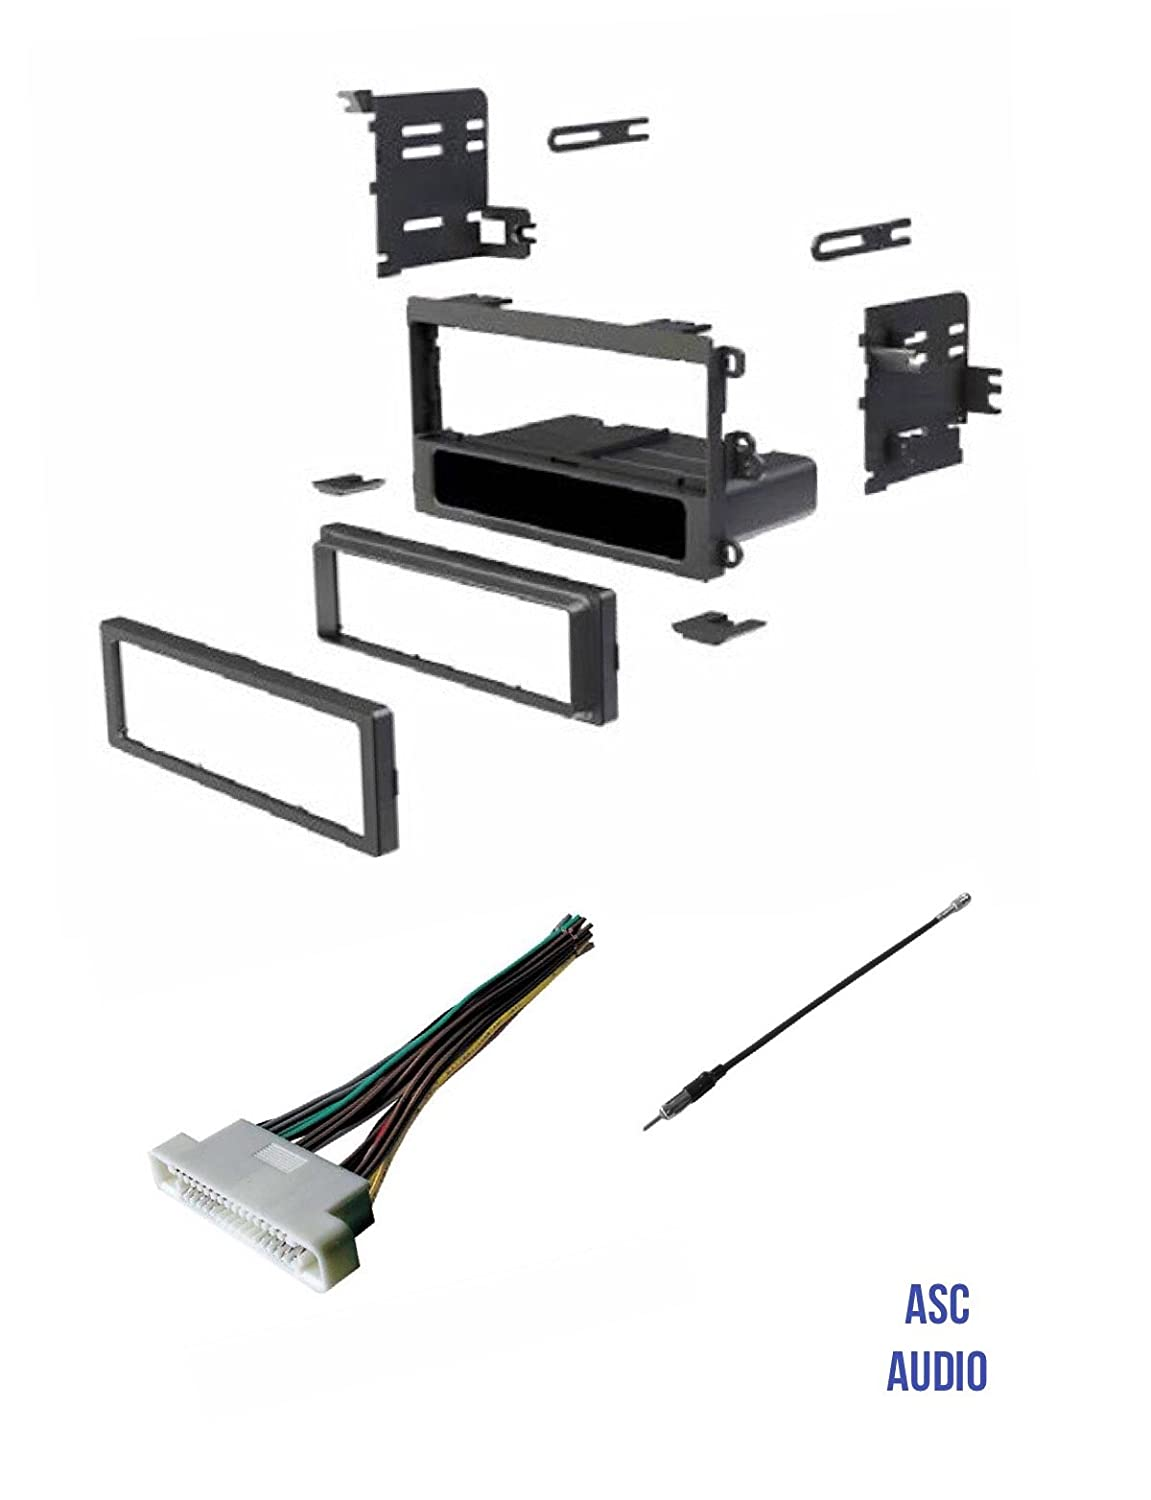 Amazon.com: ASC Car Stereo Dash Kit, Wire Harness, and Antenna Adapter to  Install a Single Din Aftermarket Radio for some 00-06 Buick LeSabre, ...